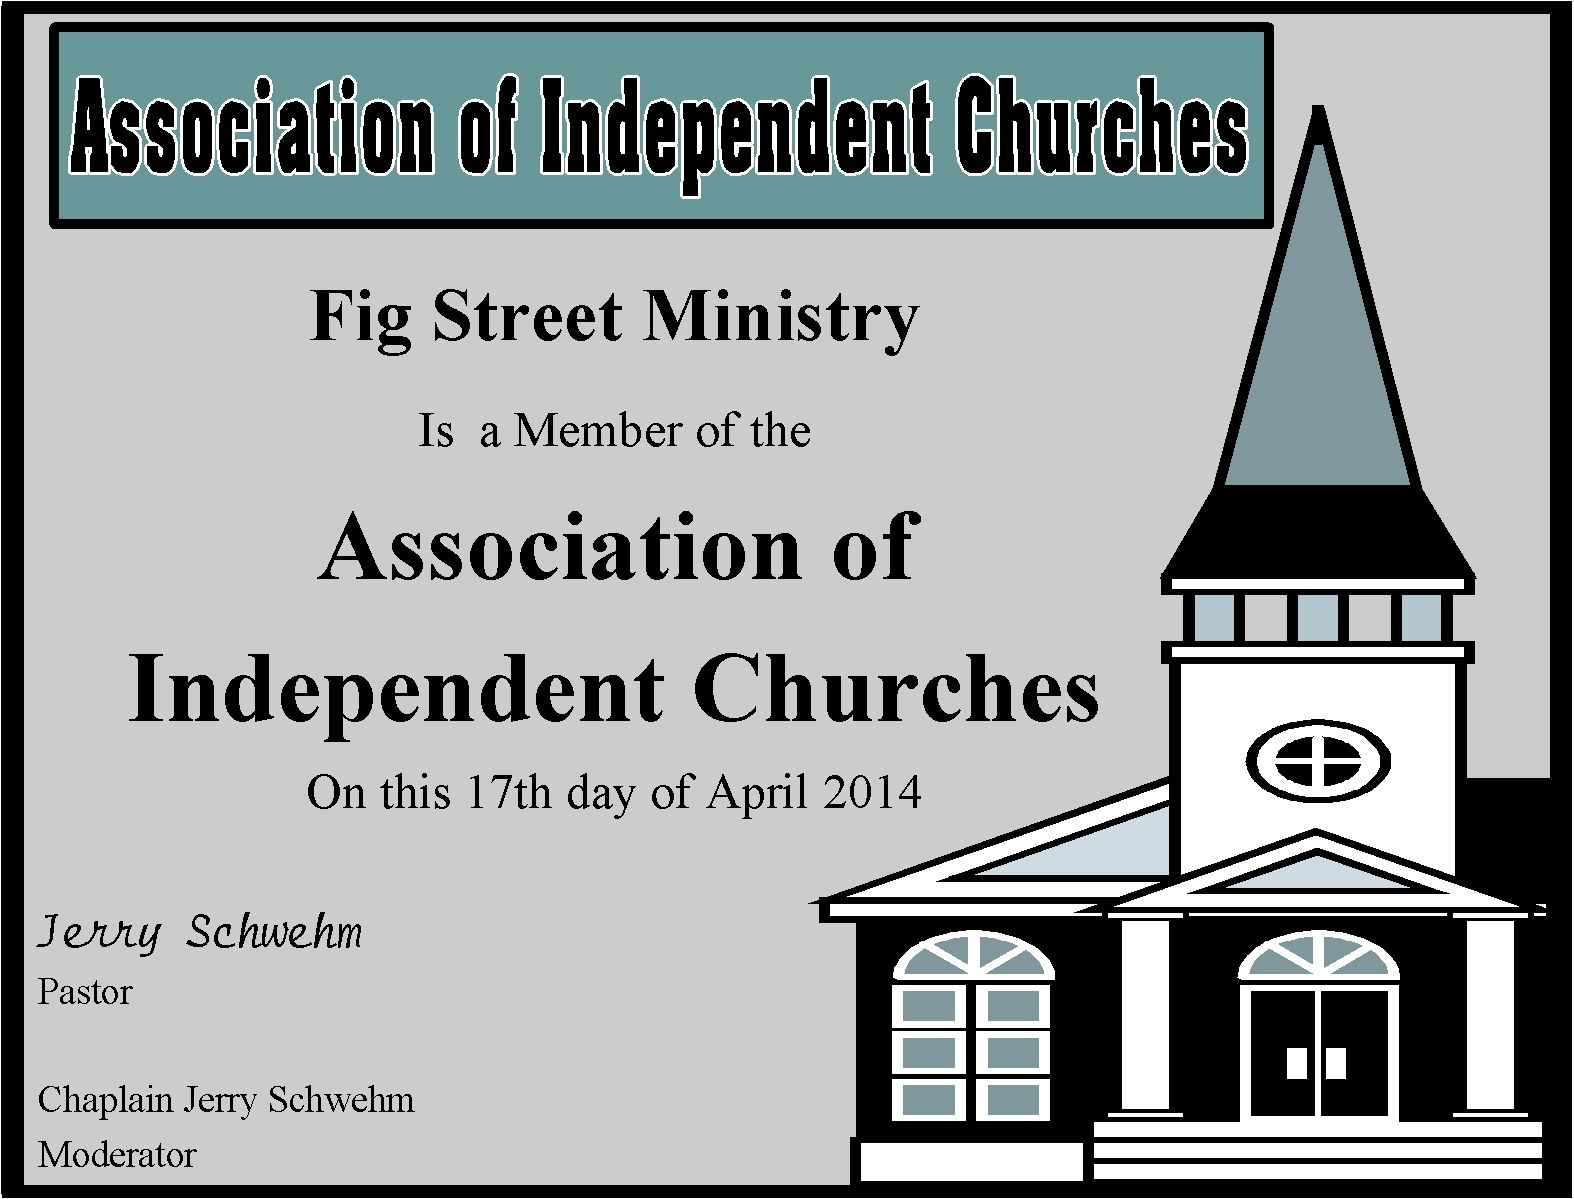 Membership In Association Of Independent Churches Fig Street Ministry Renew Wedding VowsWedding OfficiantWedding CeremoniesFigsNew OrleansMinistry